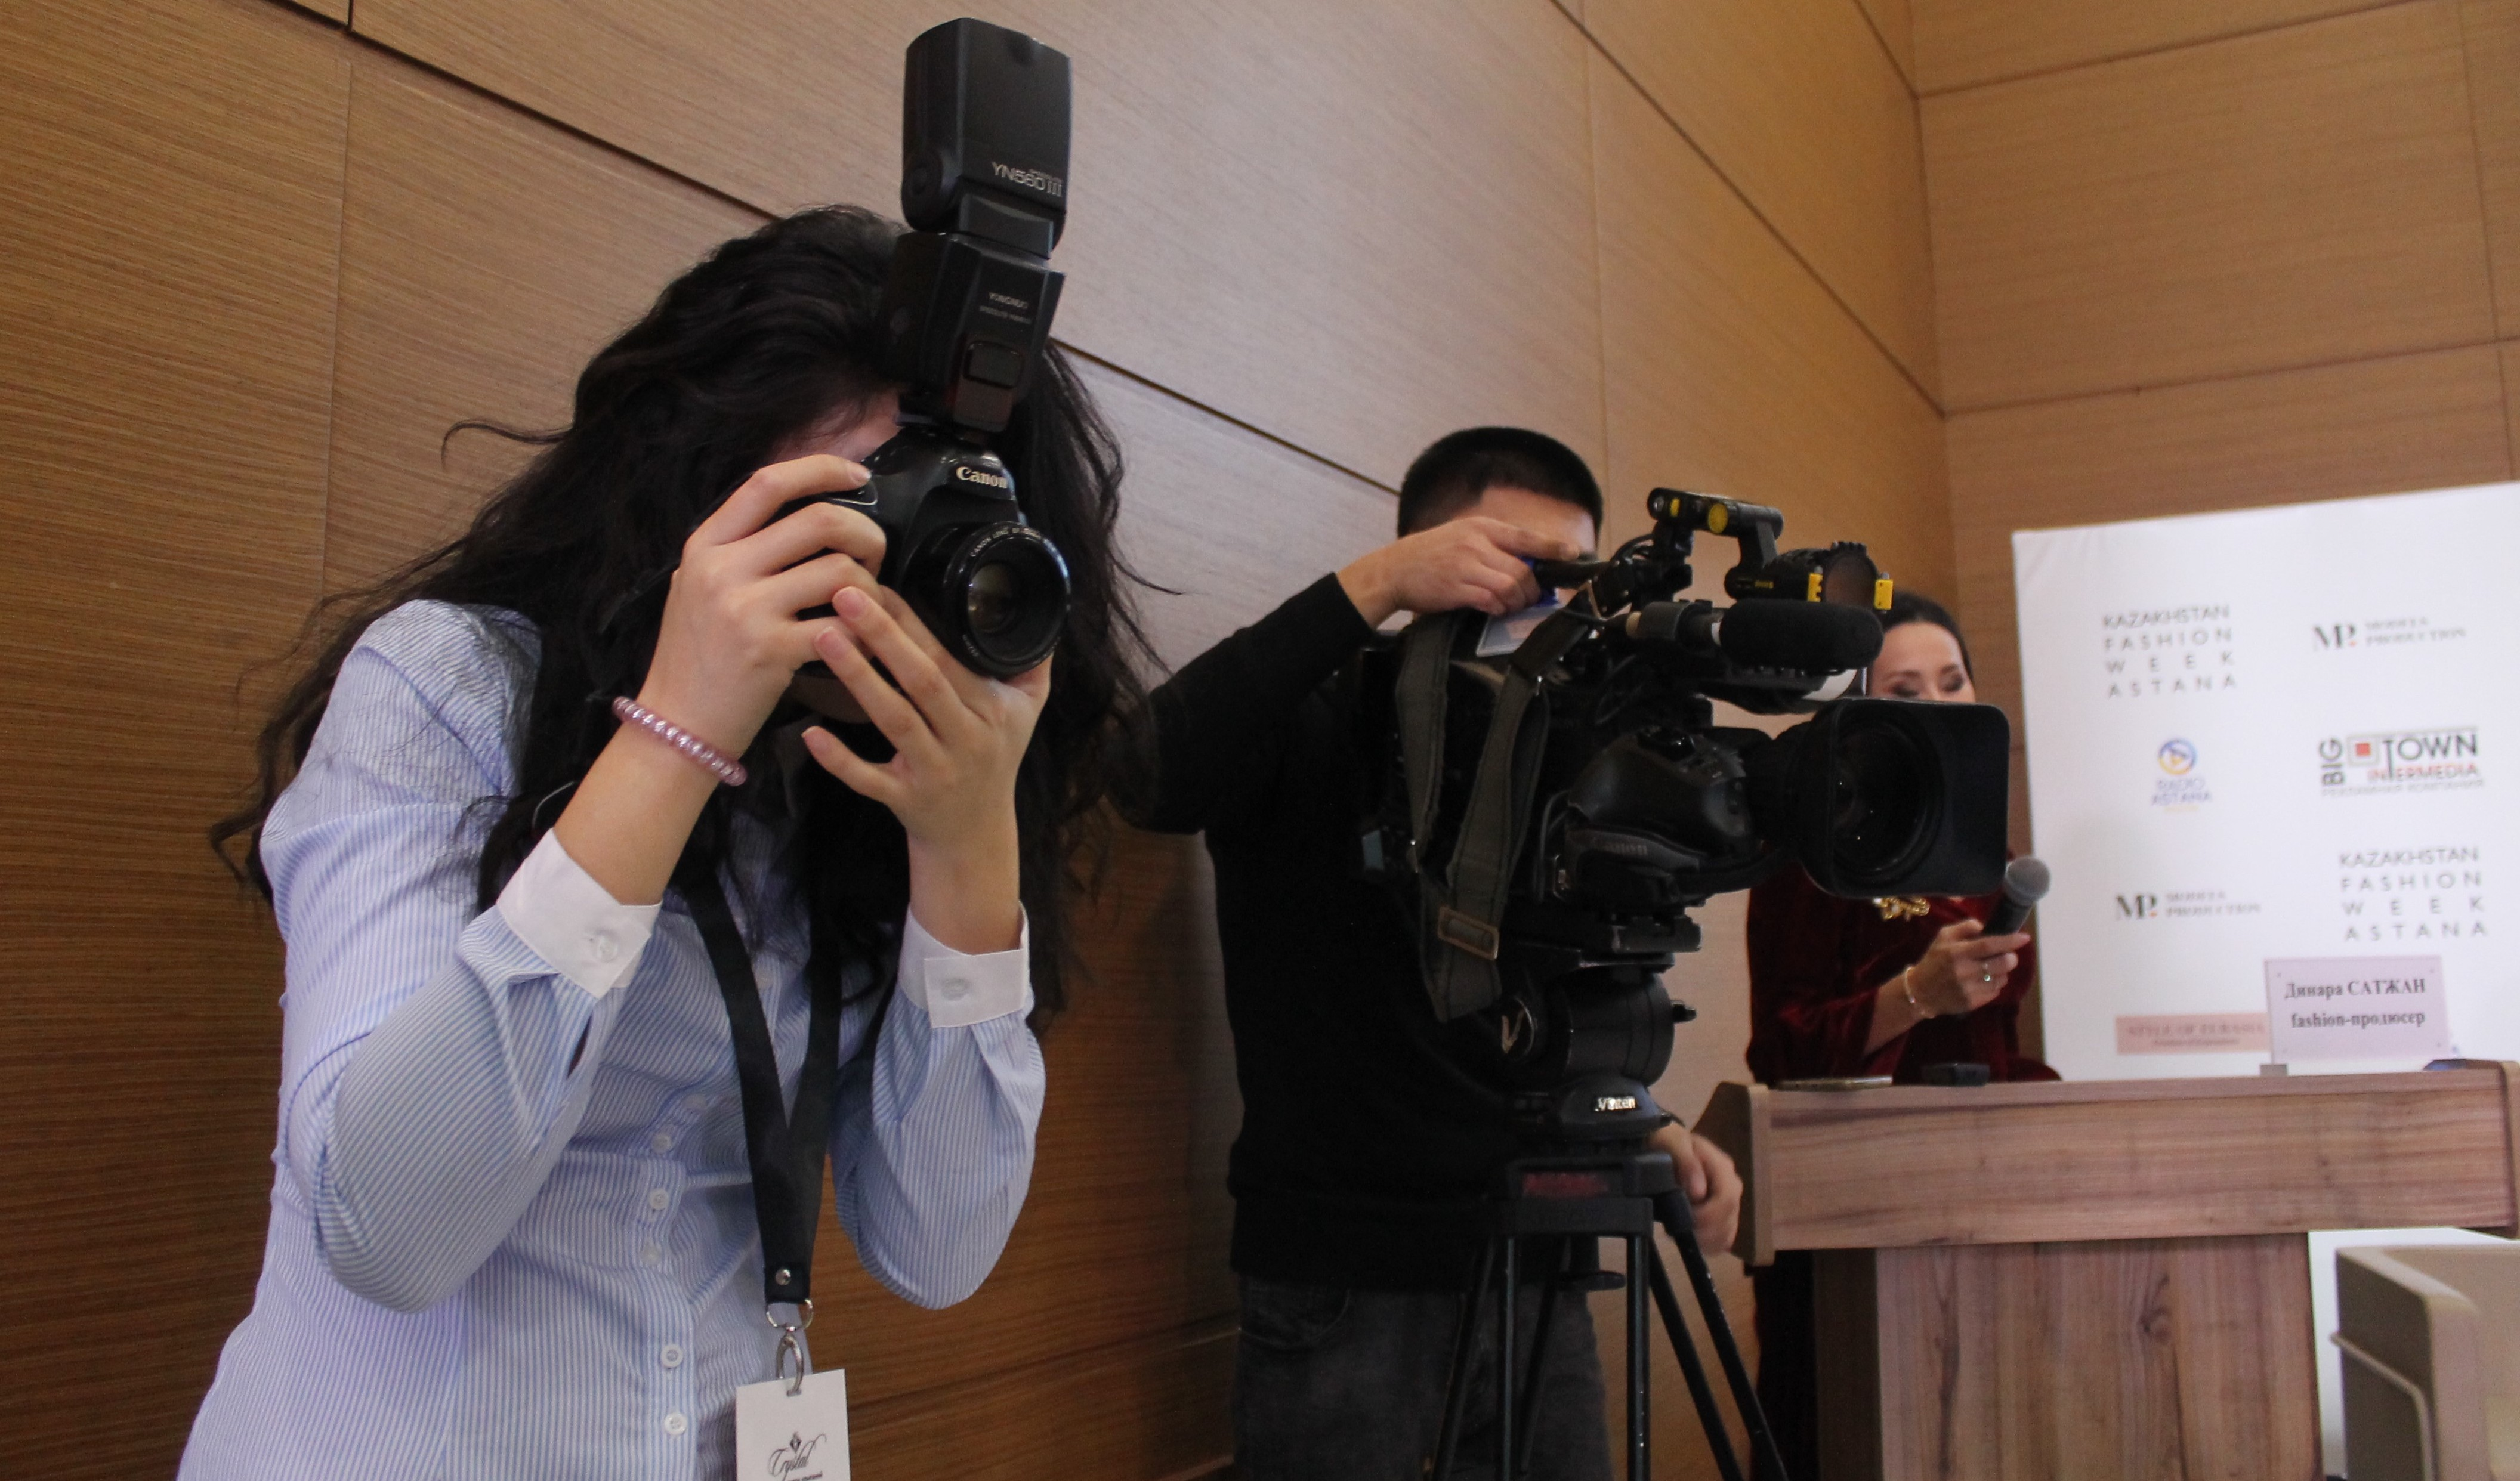 Bishkek hosts forum on media's role in countering extremism in Central Asia